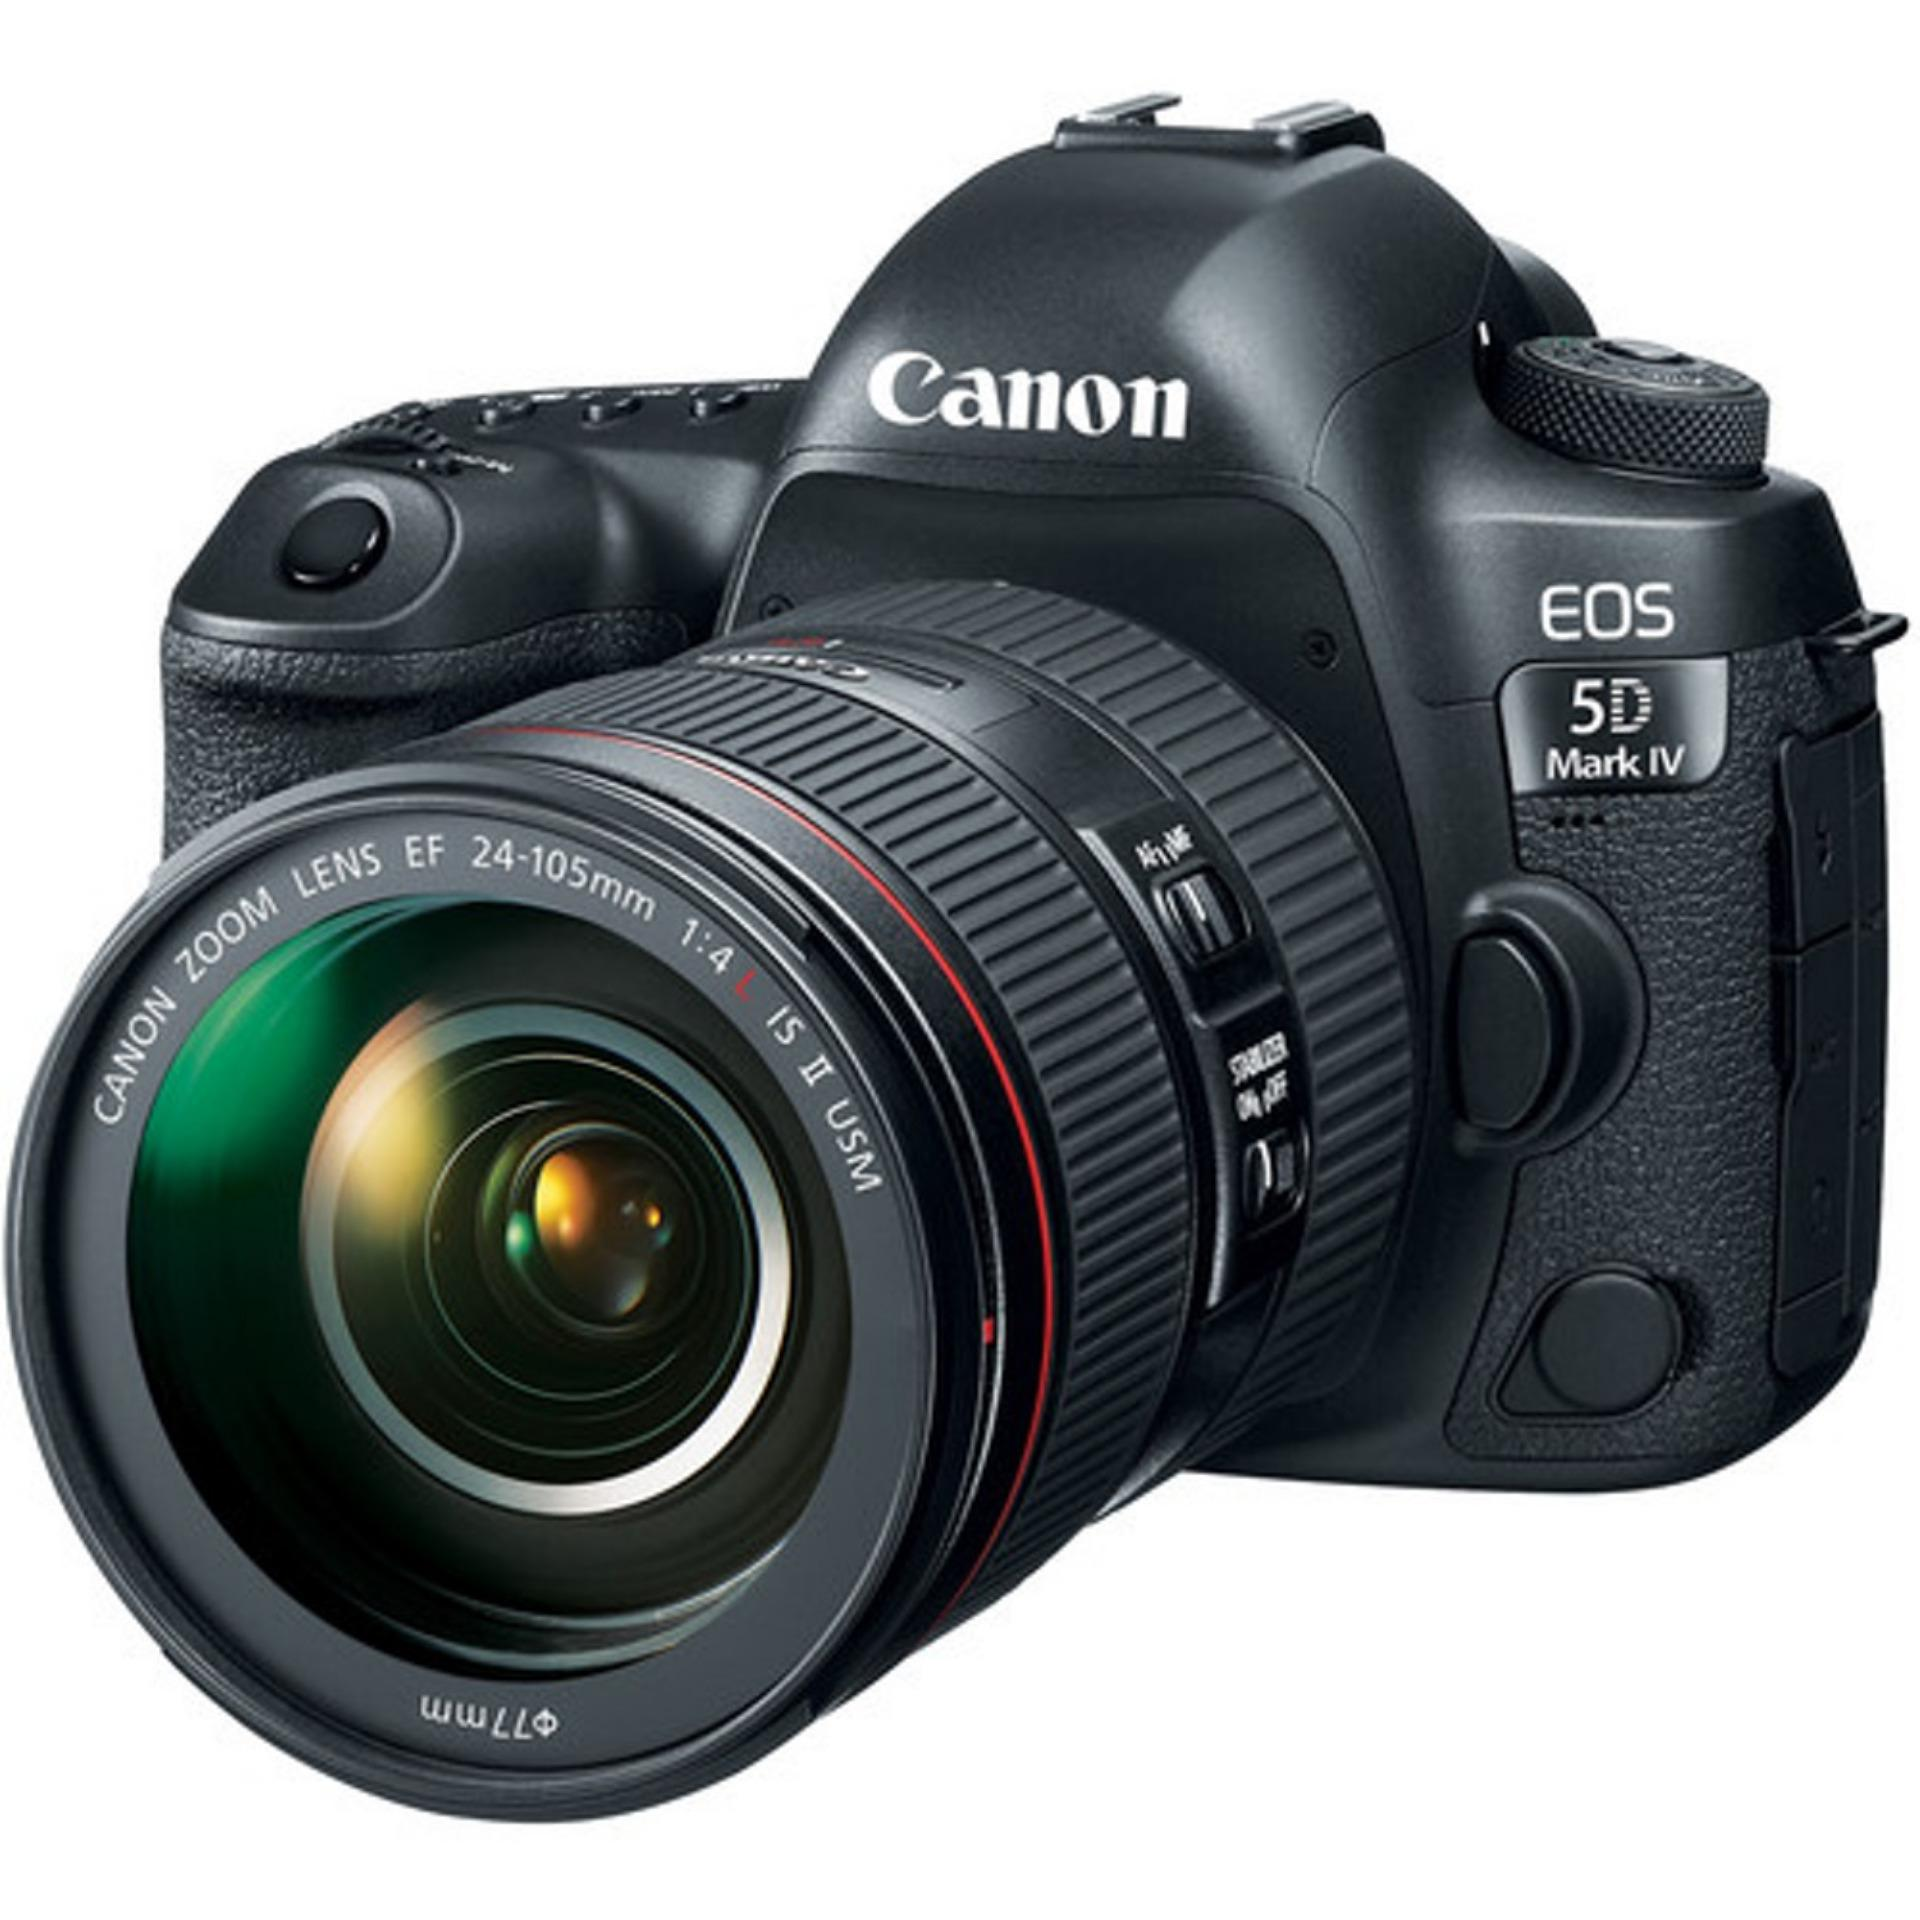 Beli Canon Eos 5D Mark Iv Kit 24 105Mm Canon Online